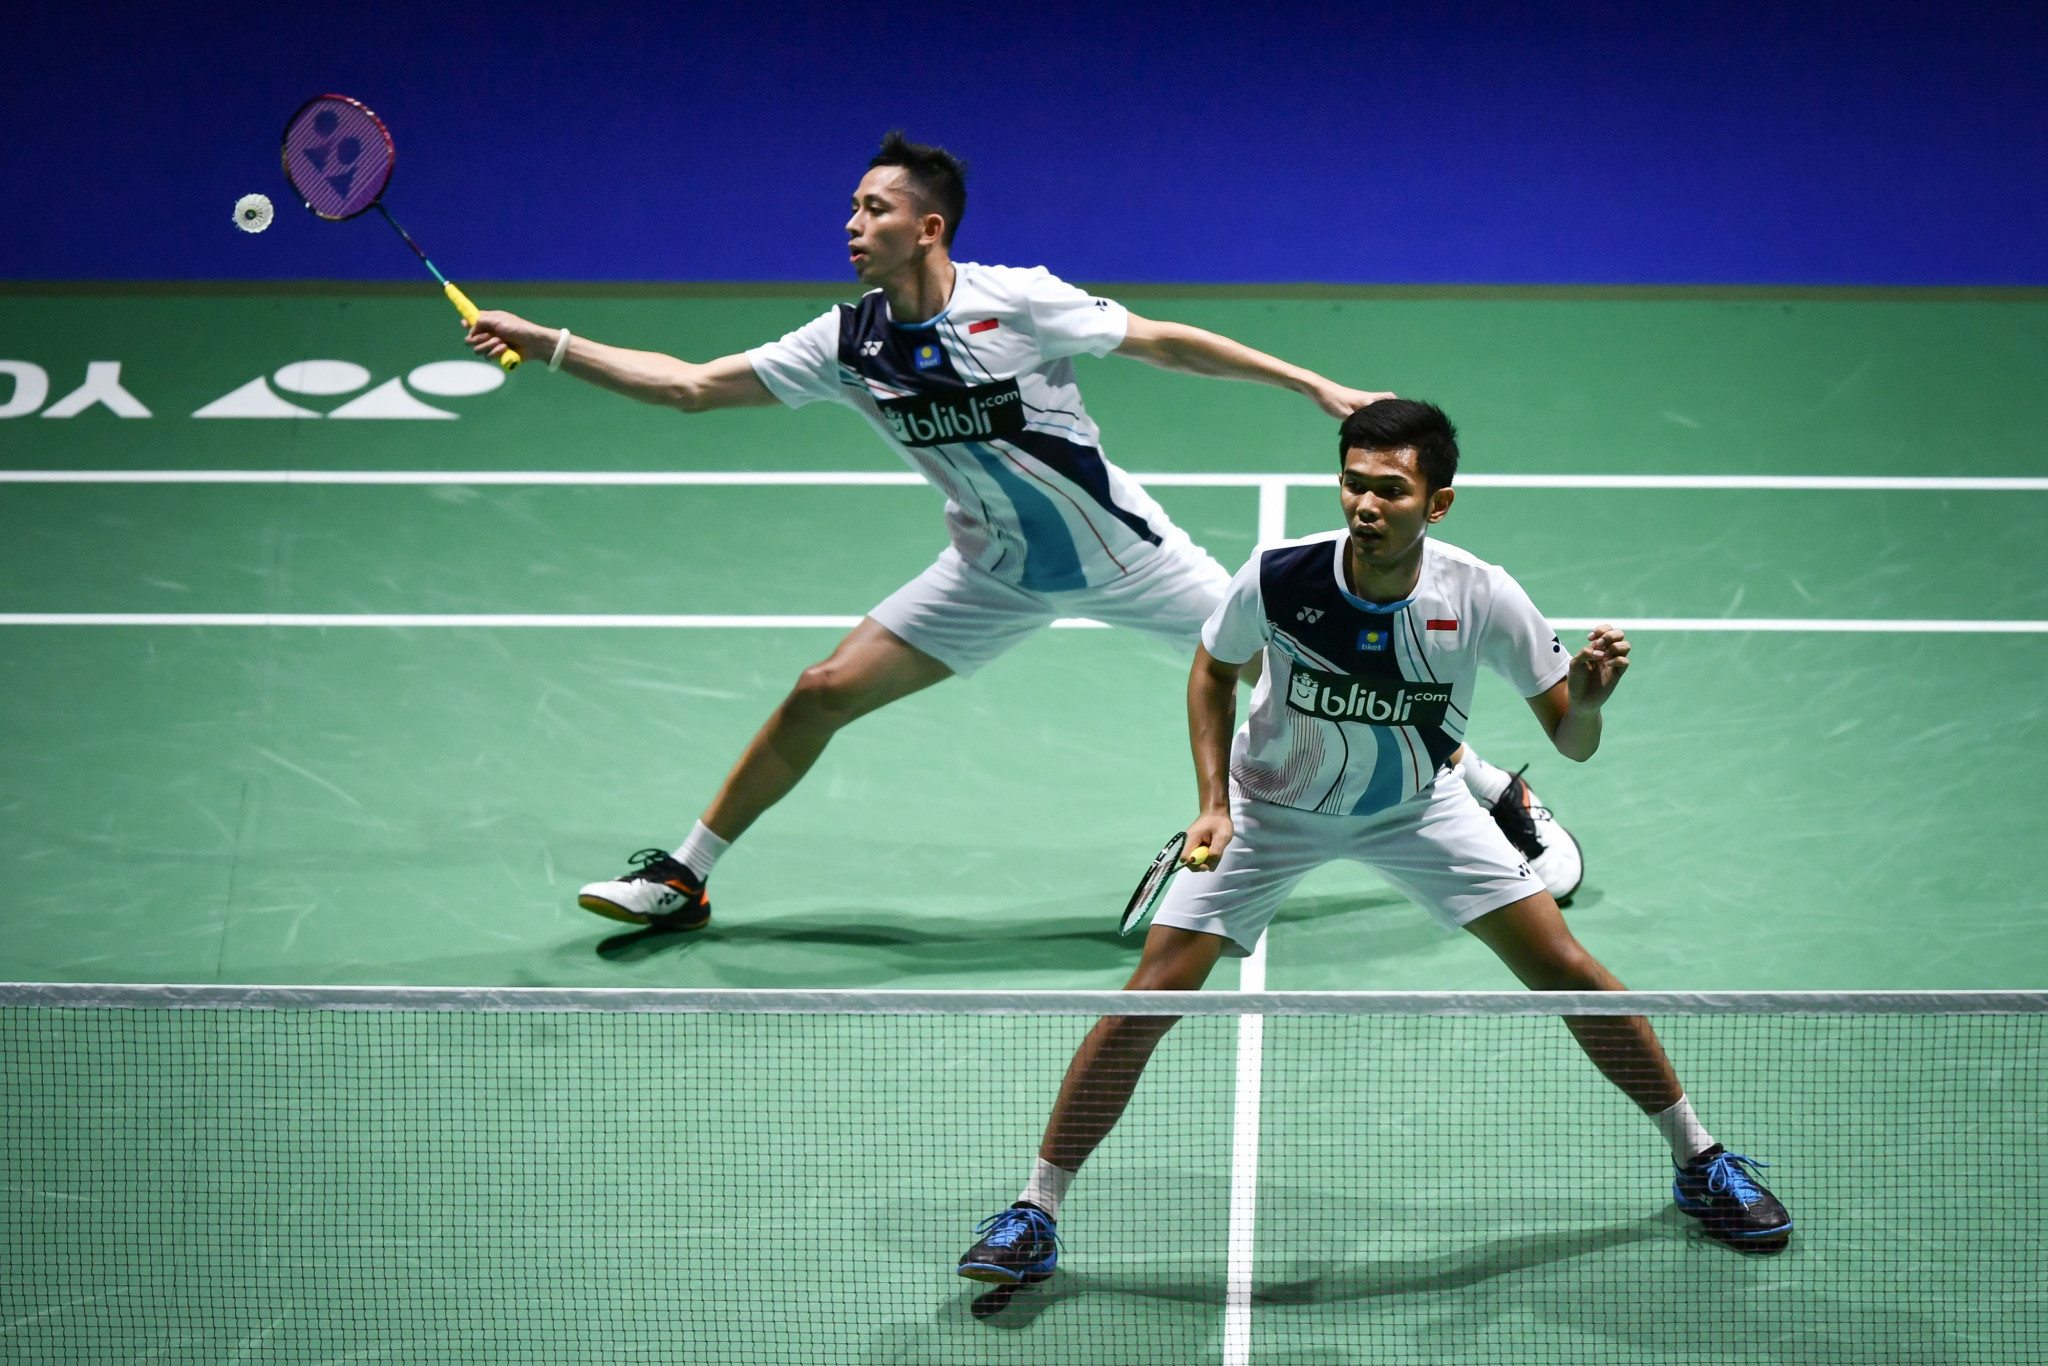 Mohammad Ahsan and Fajar Alfian sealed the men's title for Indonesia ©Getty Images